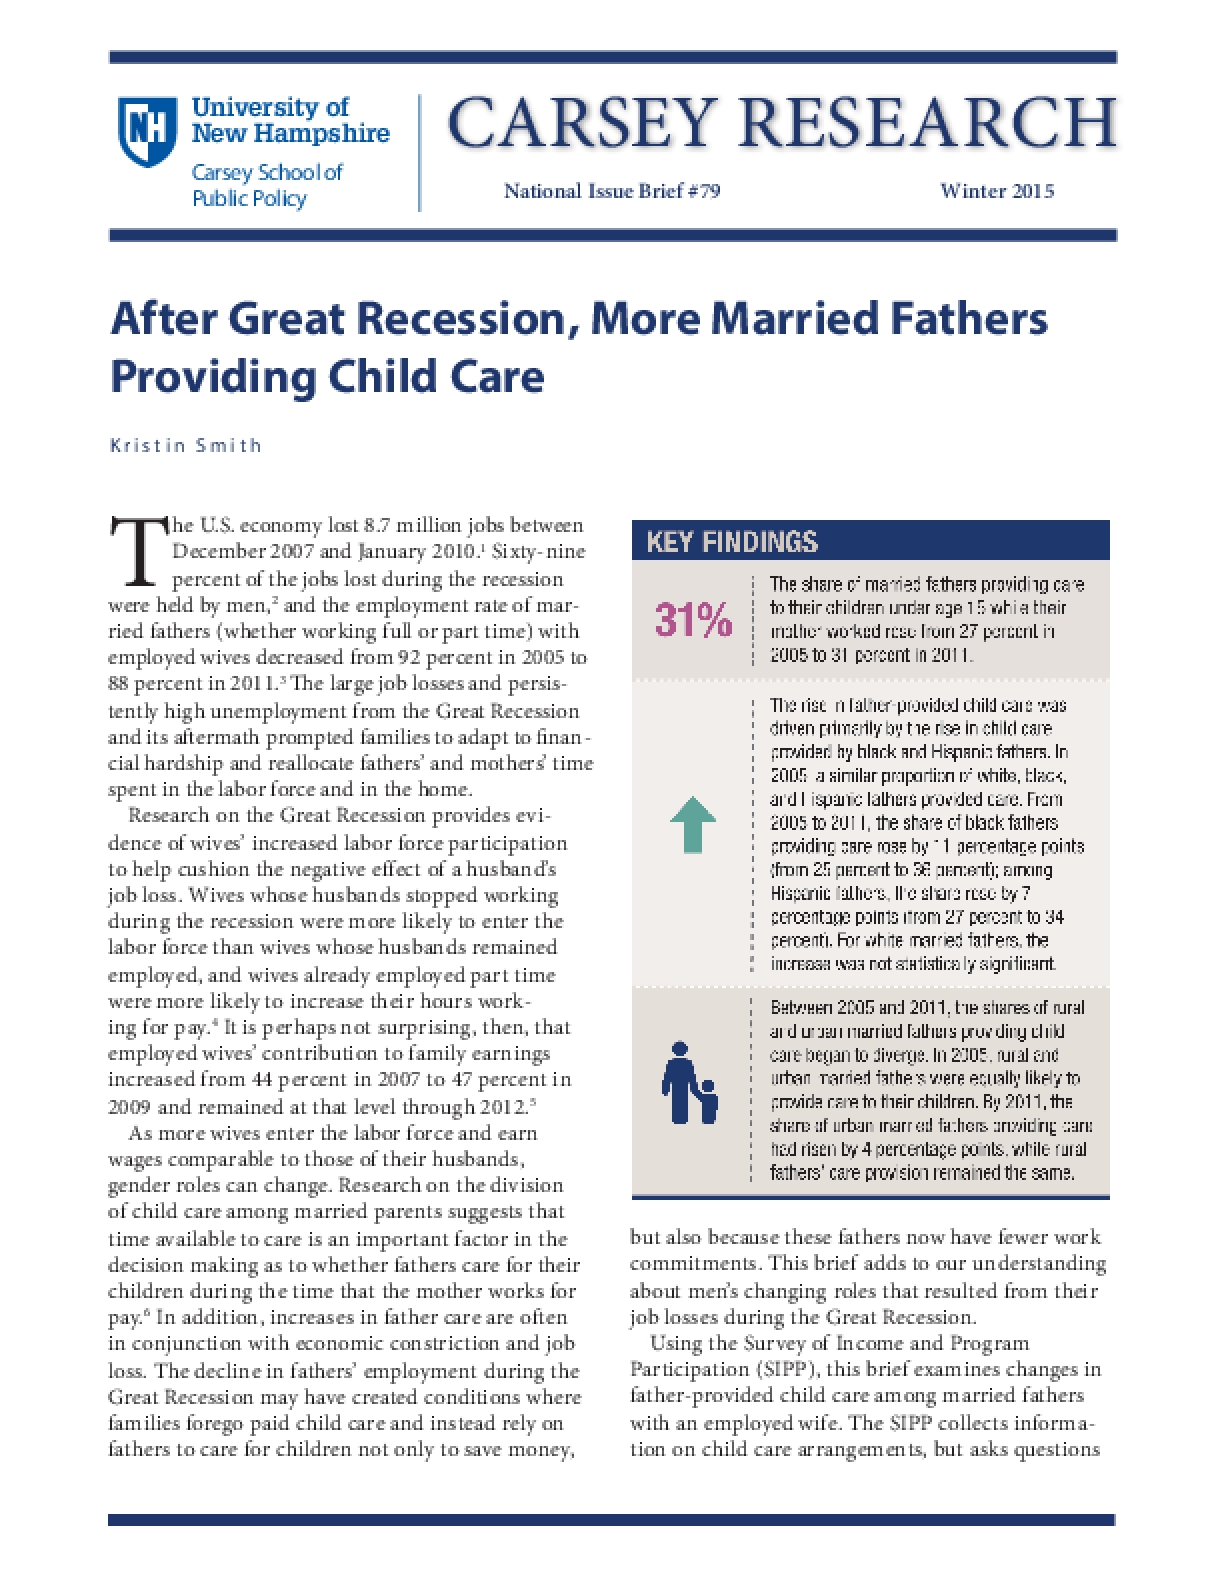 After Great Recession, More Married Fathers Providing Child Care